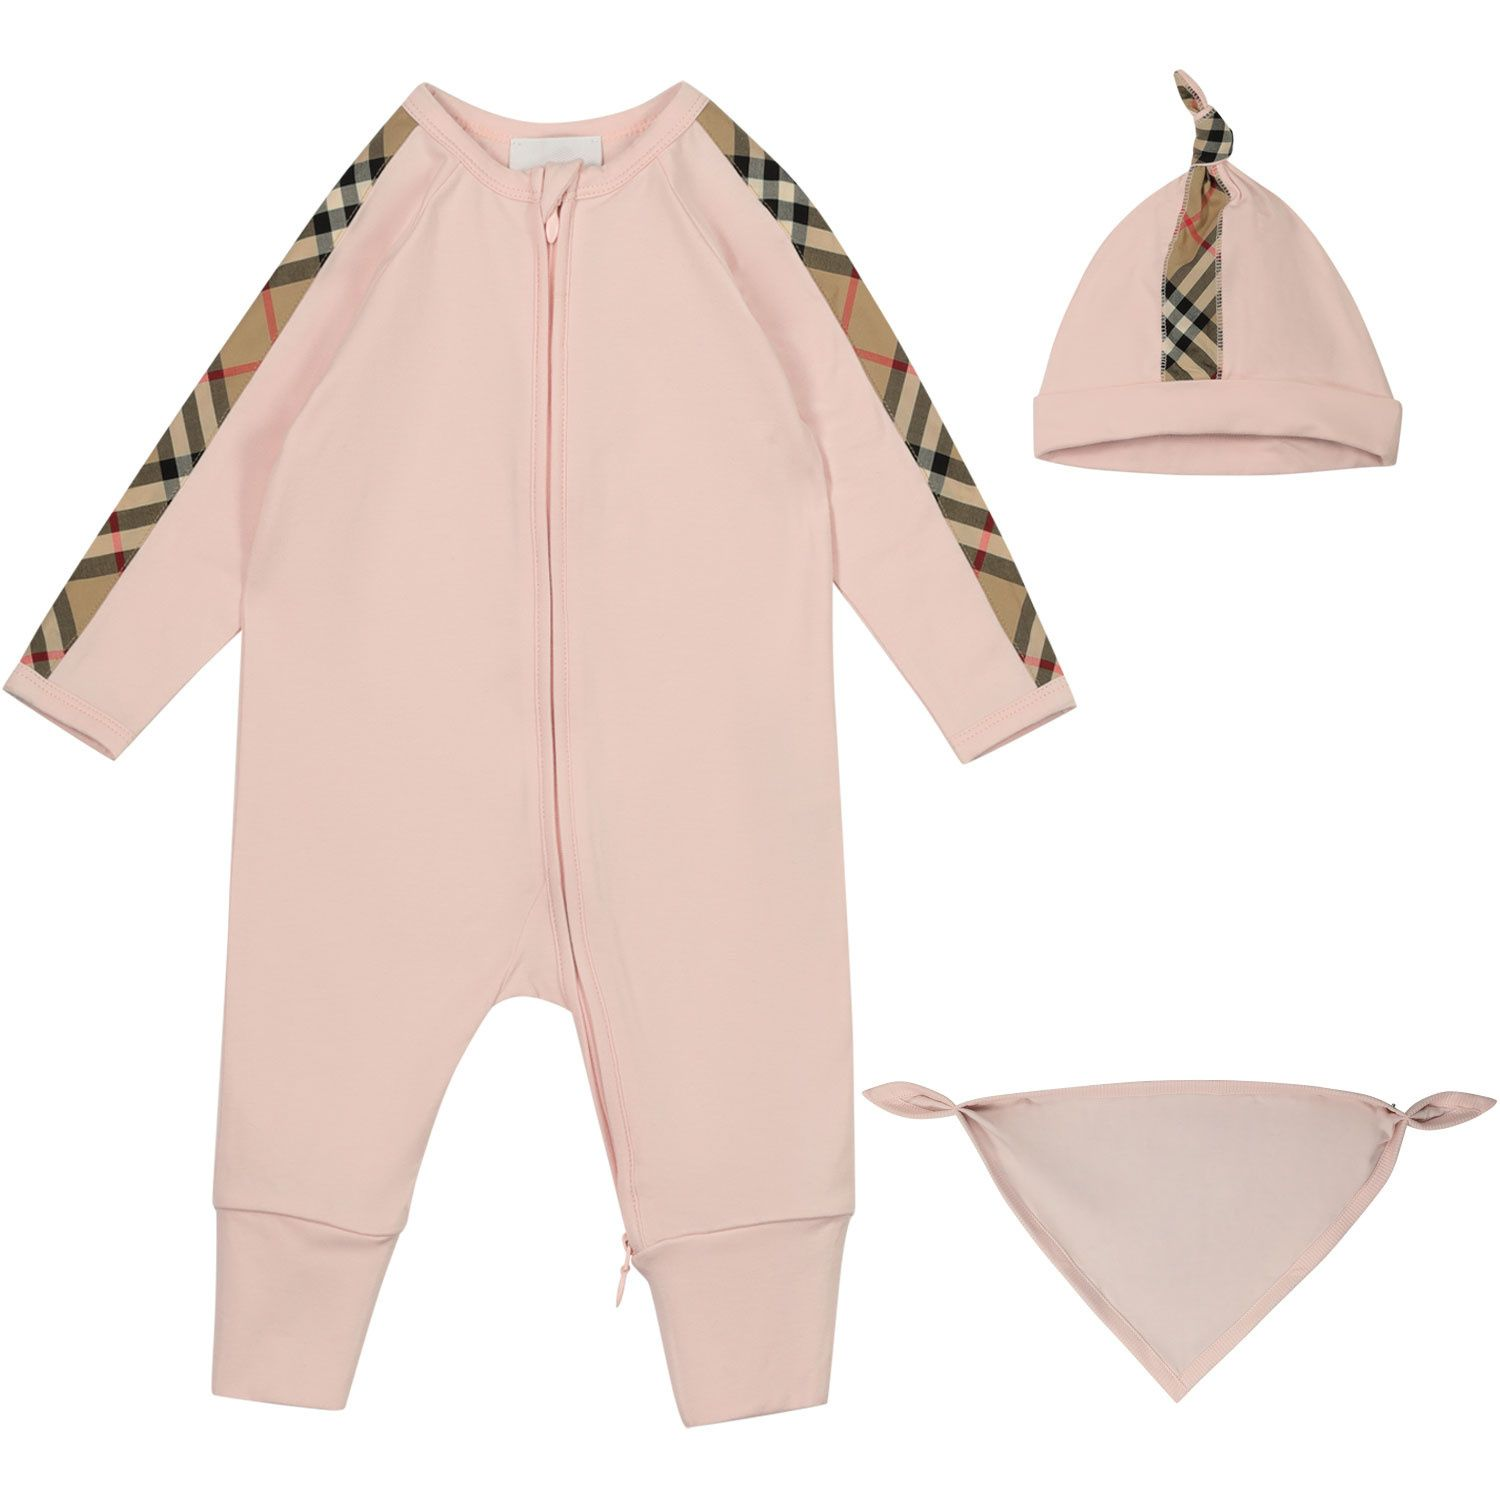 Picture of Burberry 8037121 baby playsuit light pink